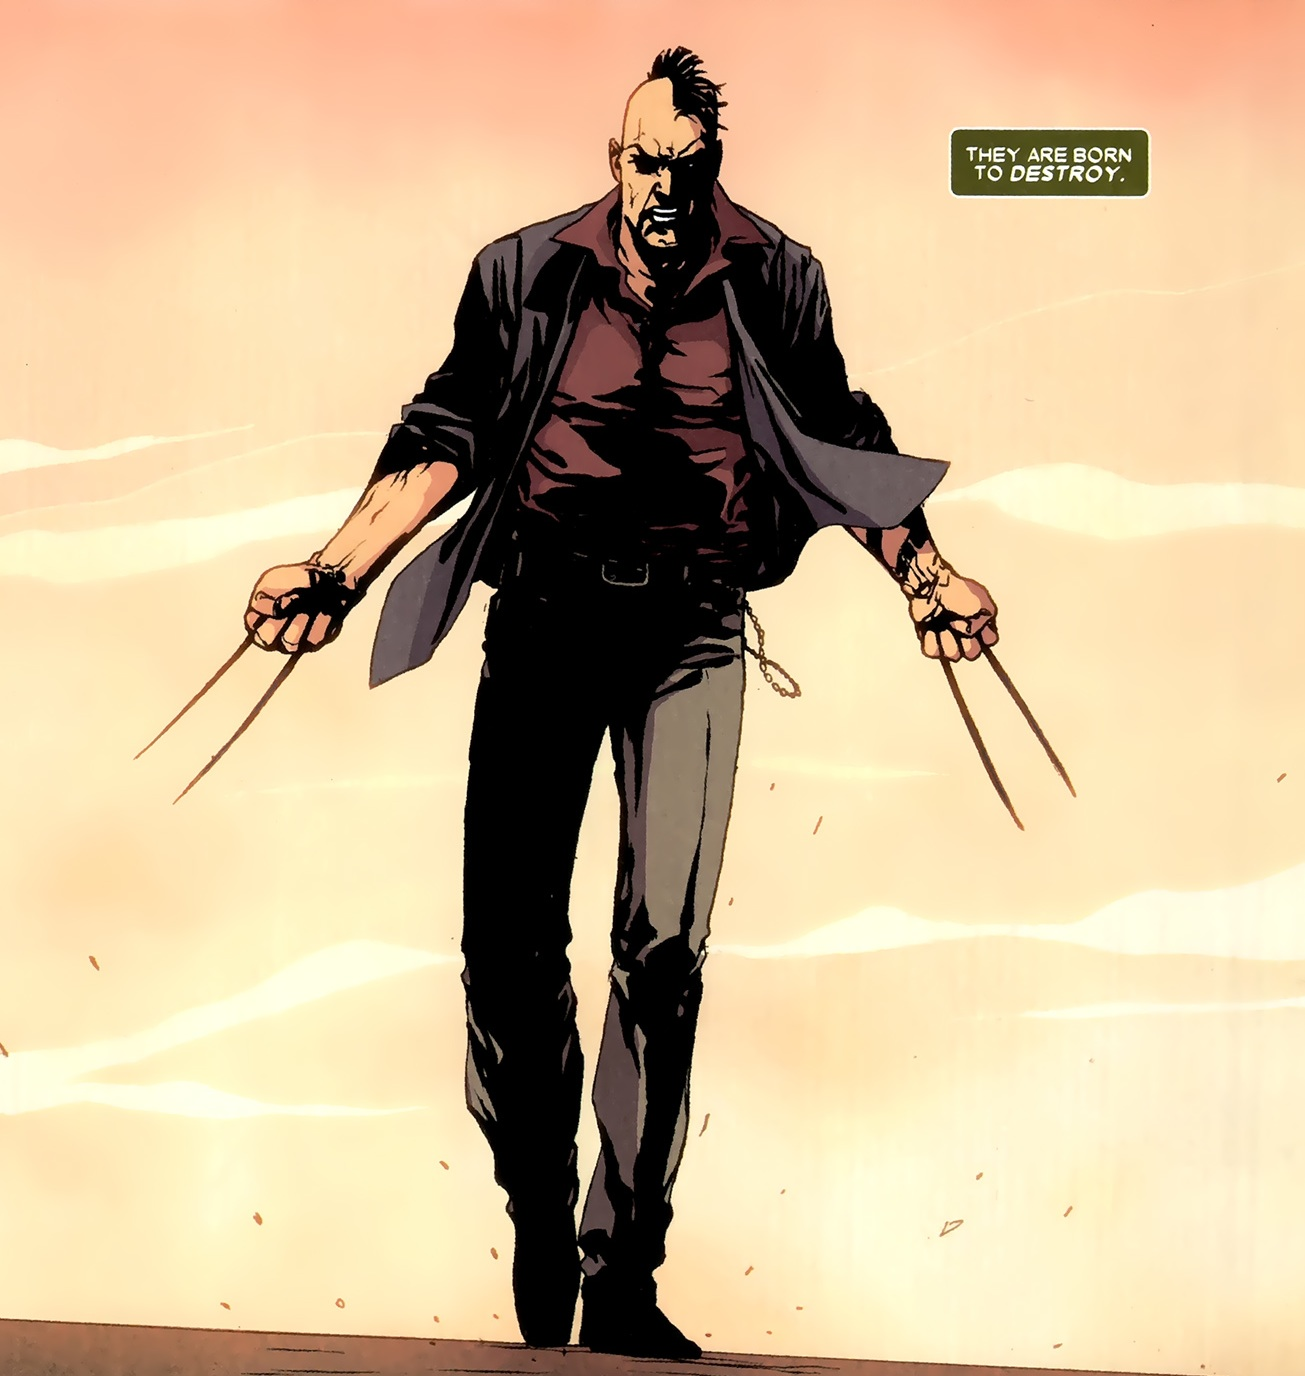 daken wallpapers comics hq daken pictures 4k wallpapers 2019 daken wallpapers comics hq daken